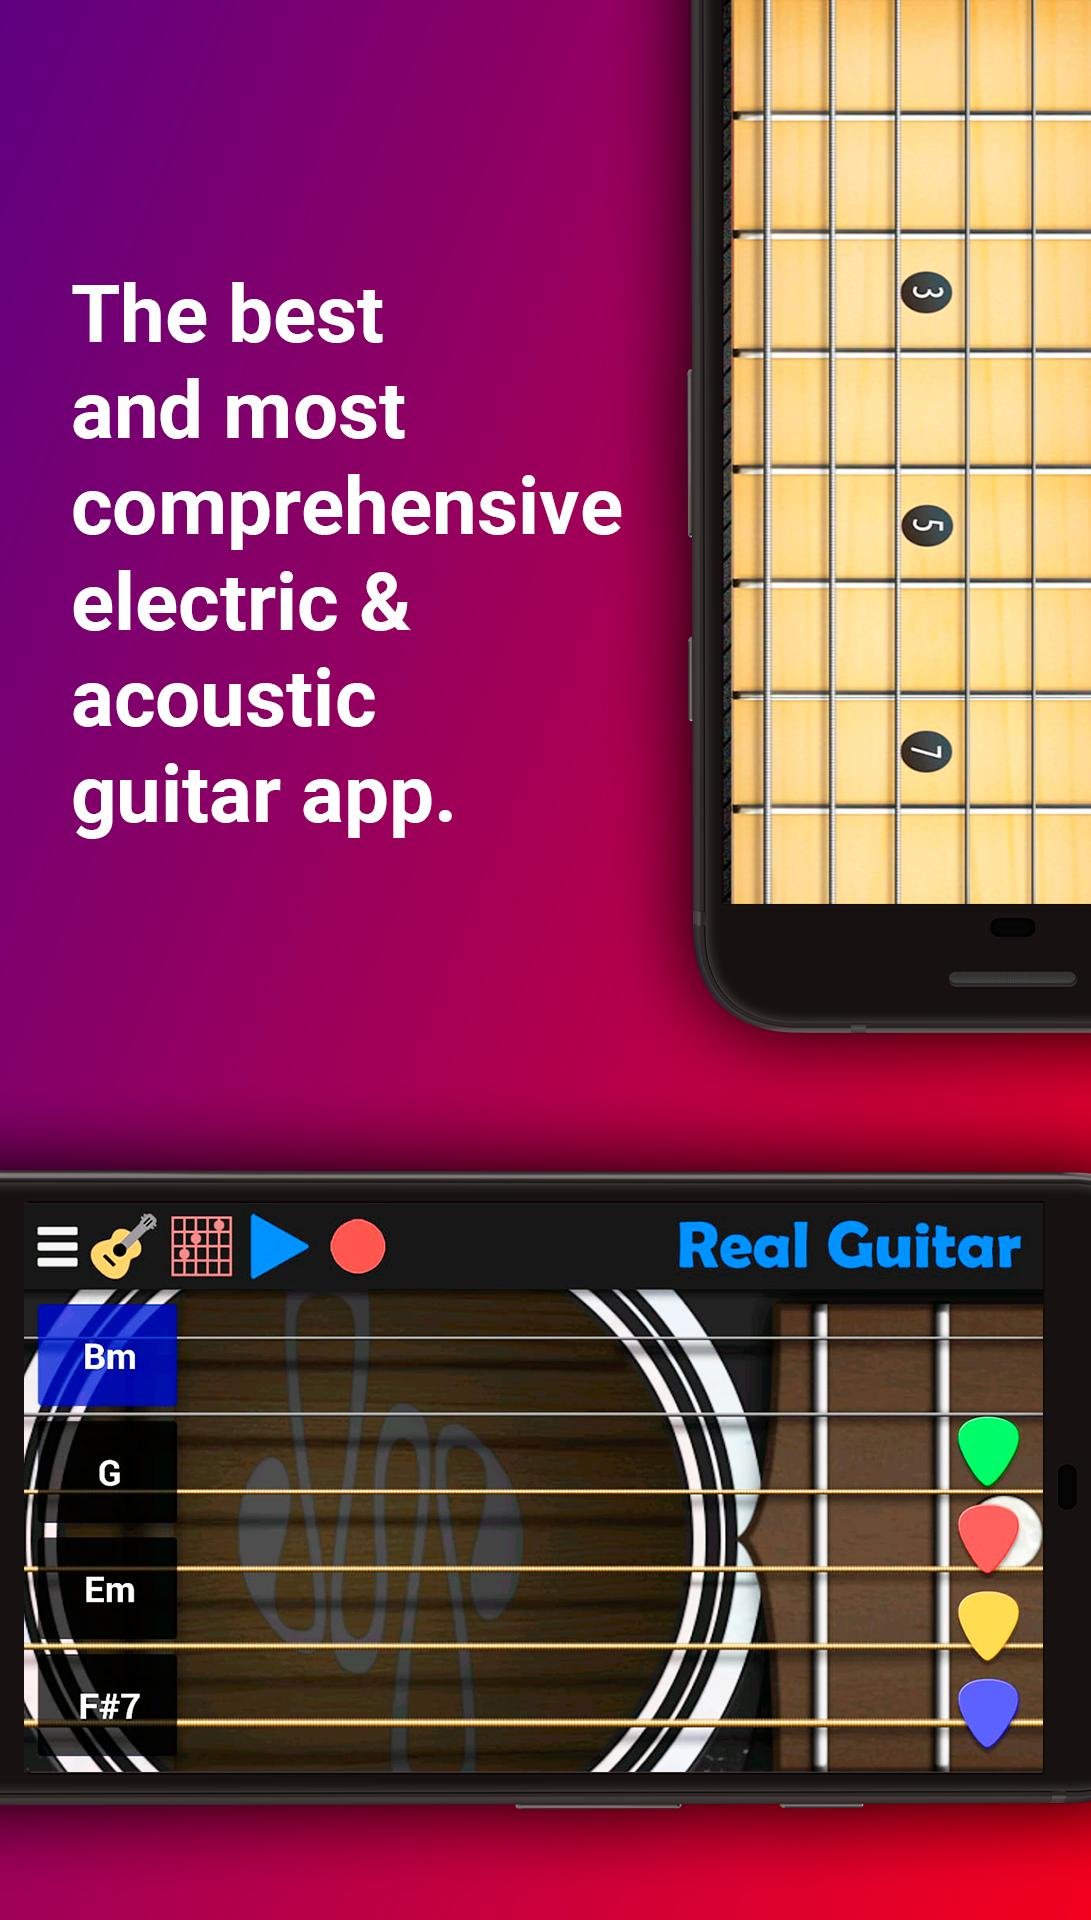 Real Guitar for Android - APK Download